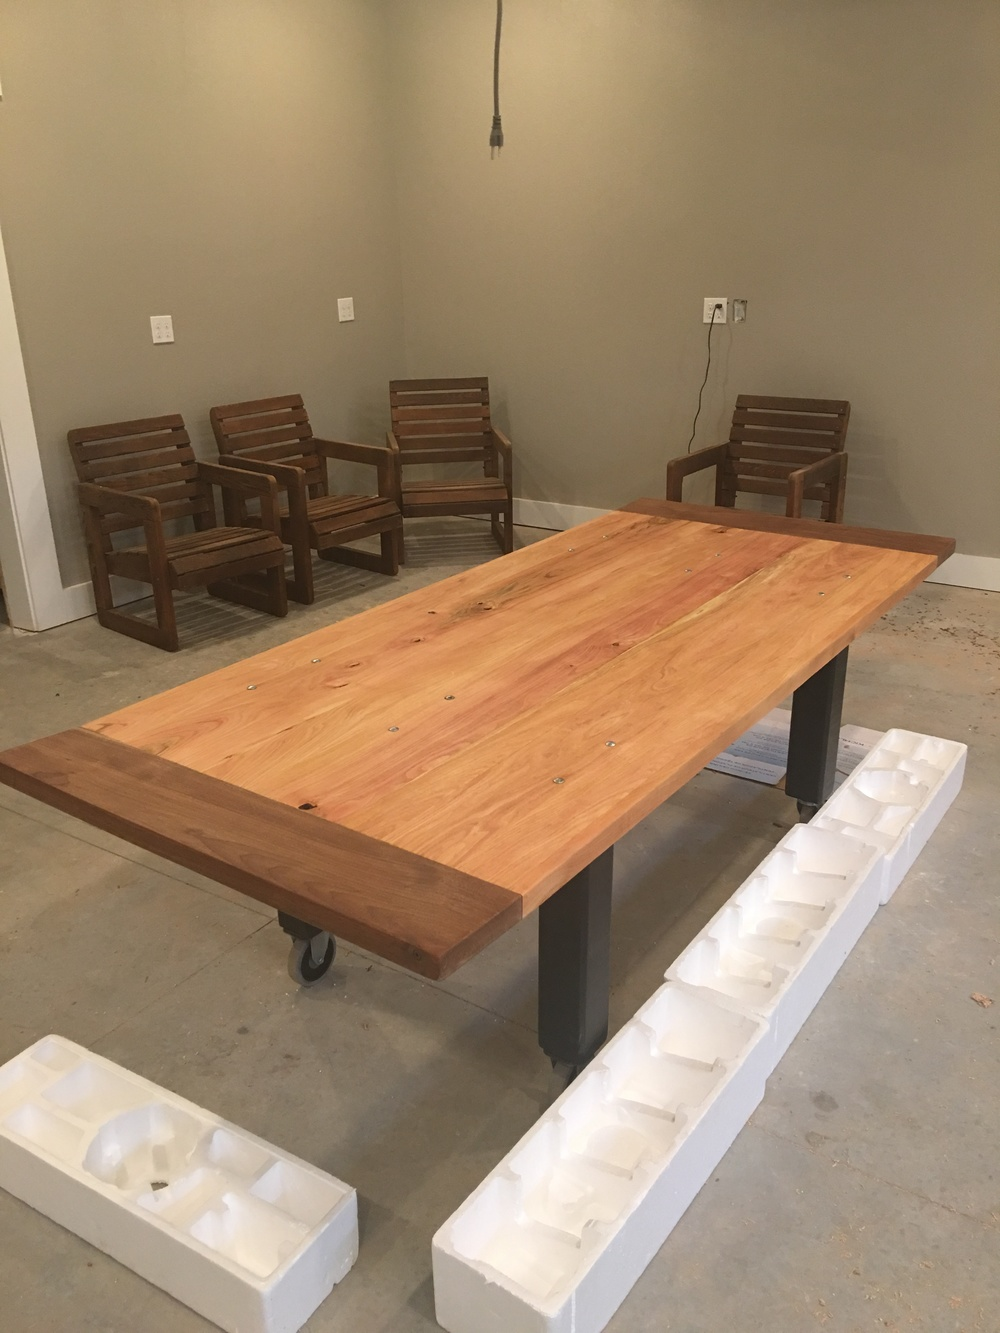 This homemade farm table will be the centerpiece for the farm-stand.